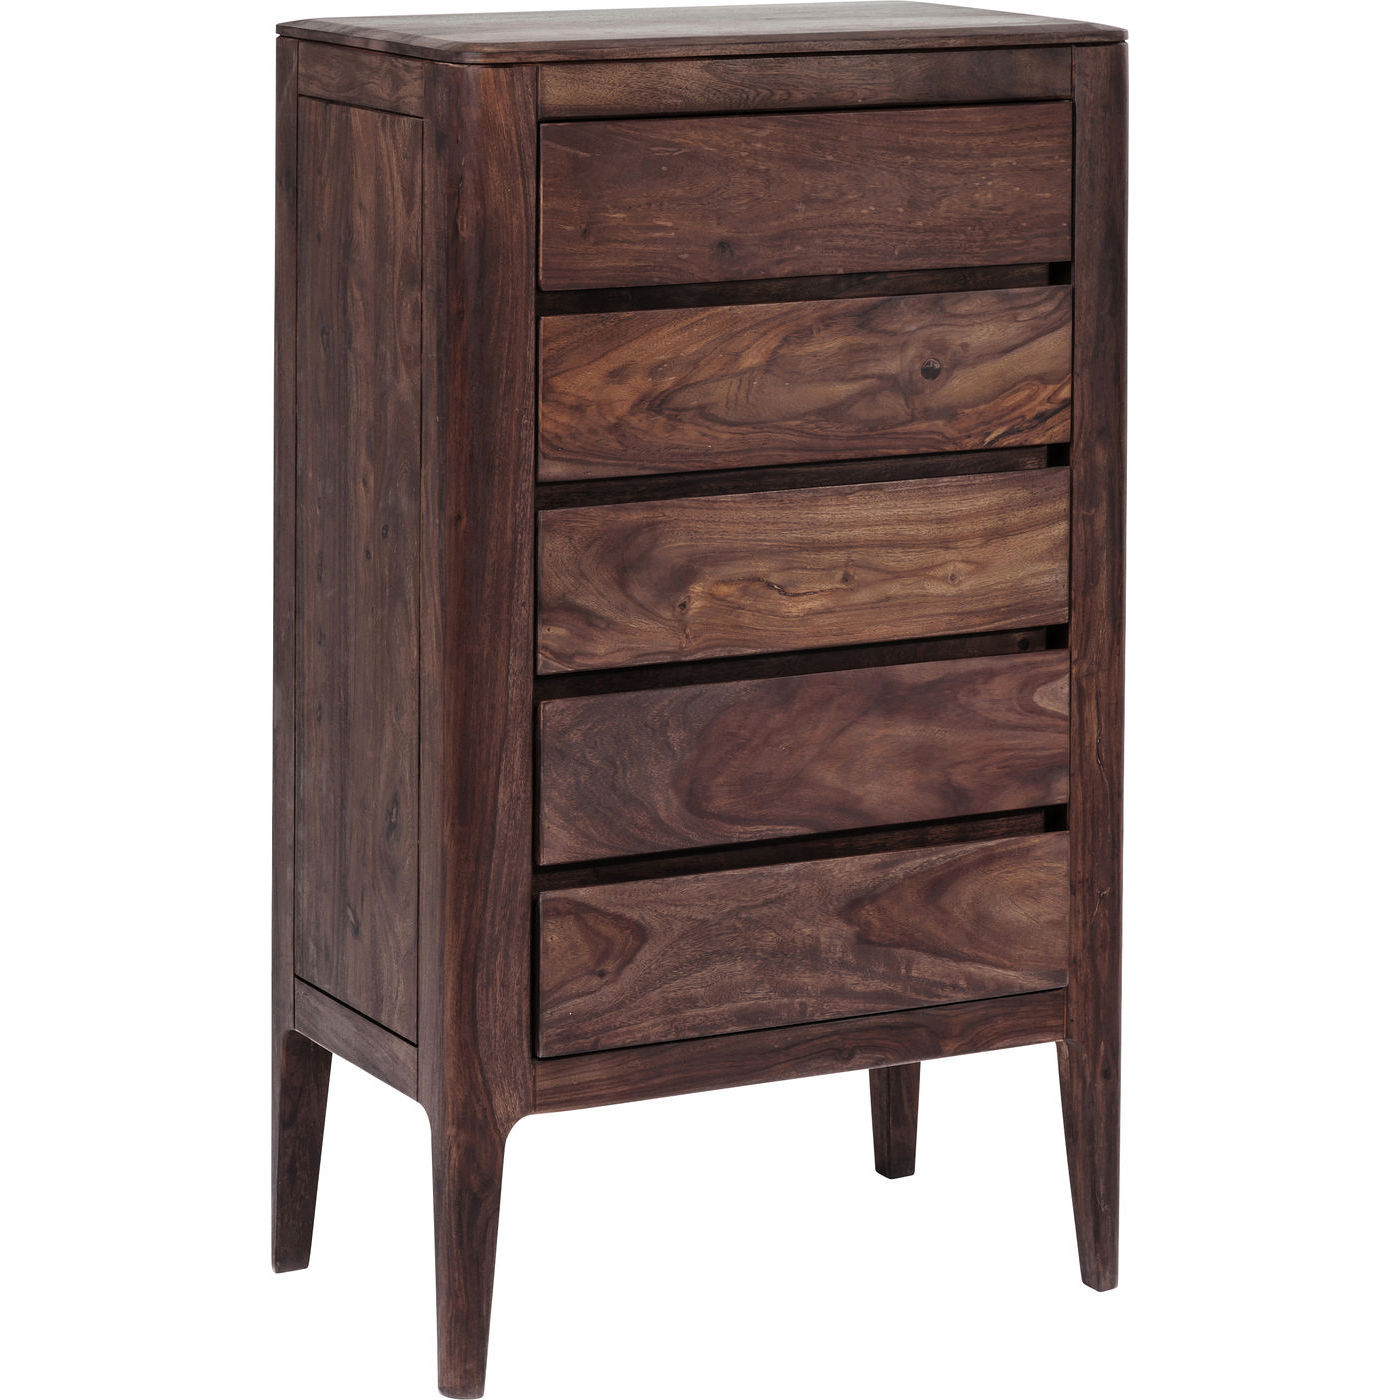 brooklyn walnut height kommode vandlakeret i valnddefarve. Black Bedroom Furniture Sets. Home Design Ideas